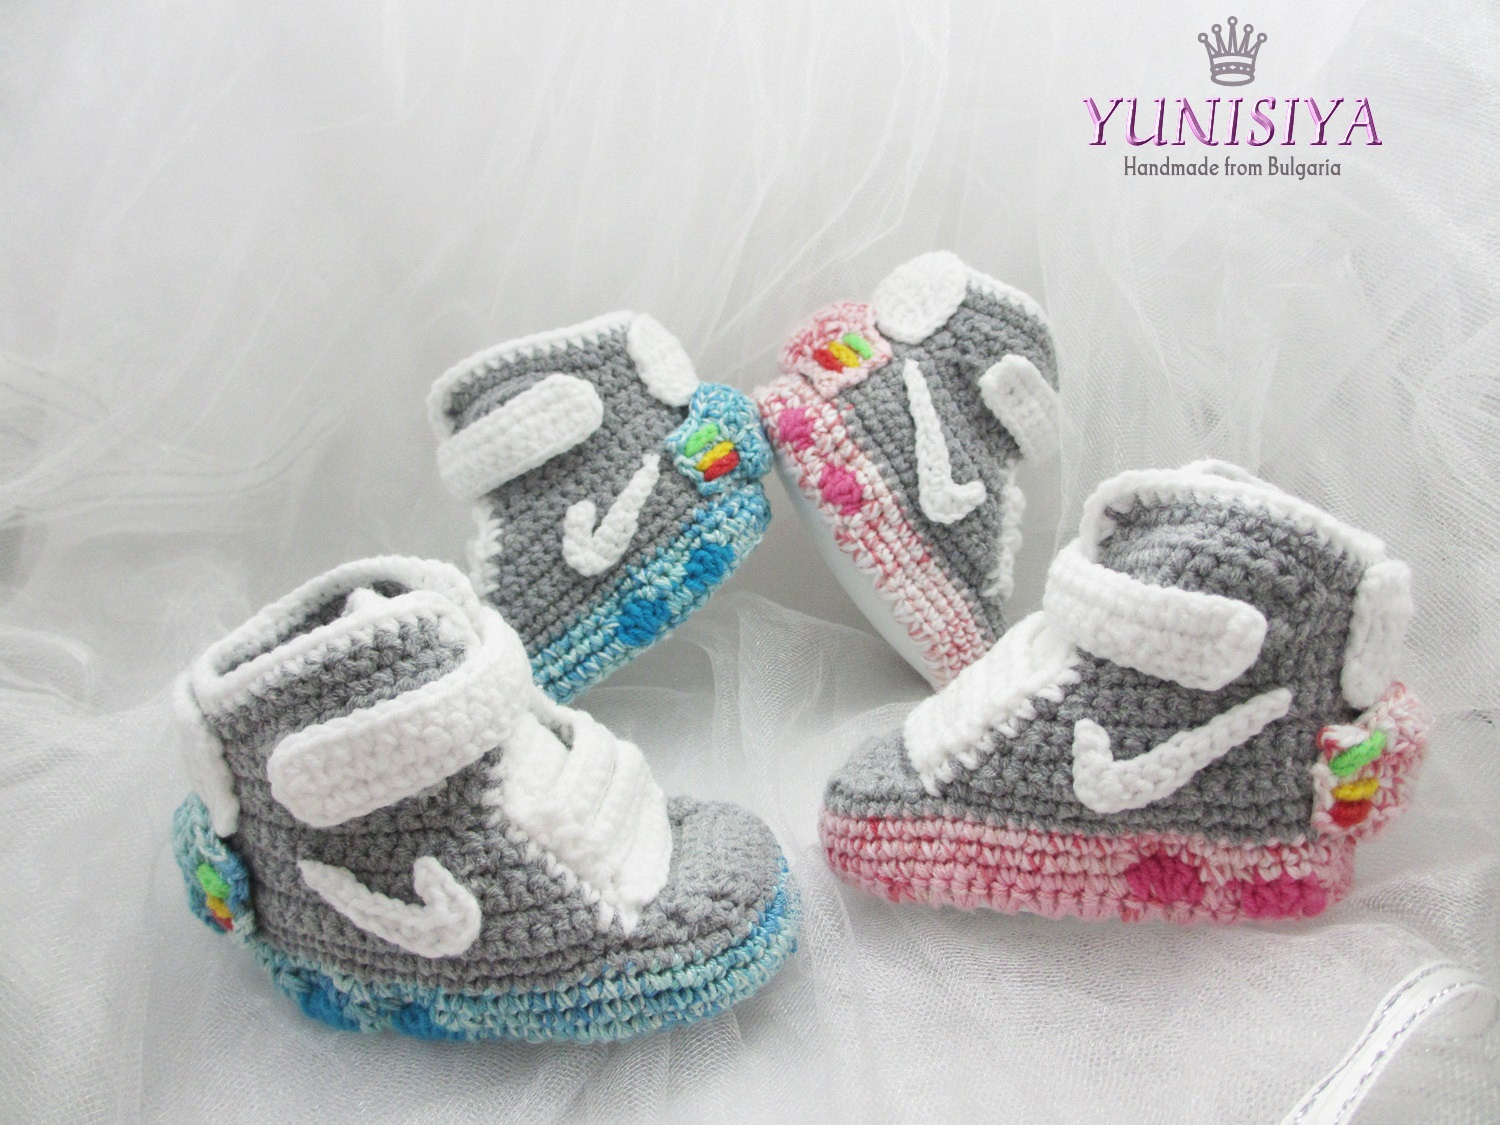 Luxury Crochet Baby Shoes Baby Booties Crochet Booties Air Mag Crochet Baby Slippers Of Marvelous 50 Images Crochet Baby Slippers